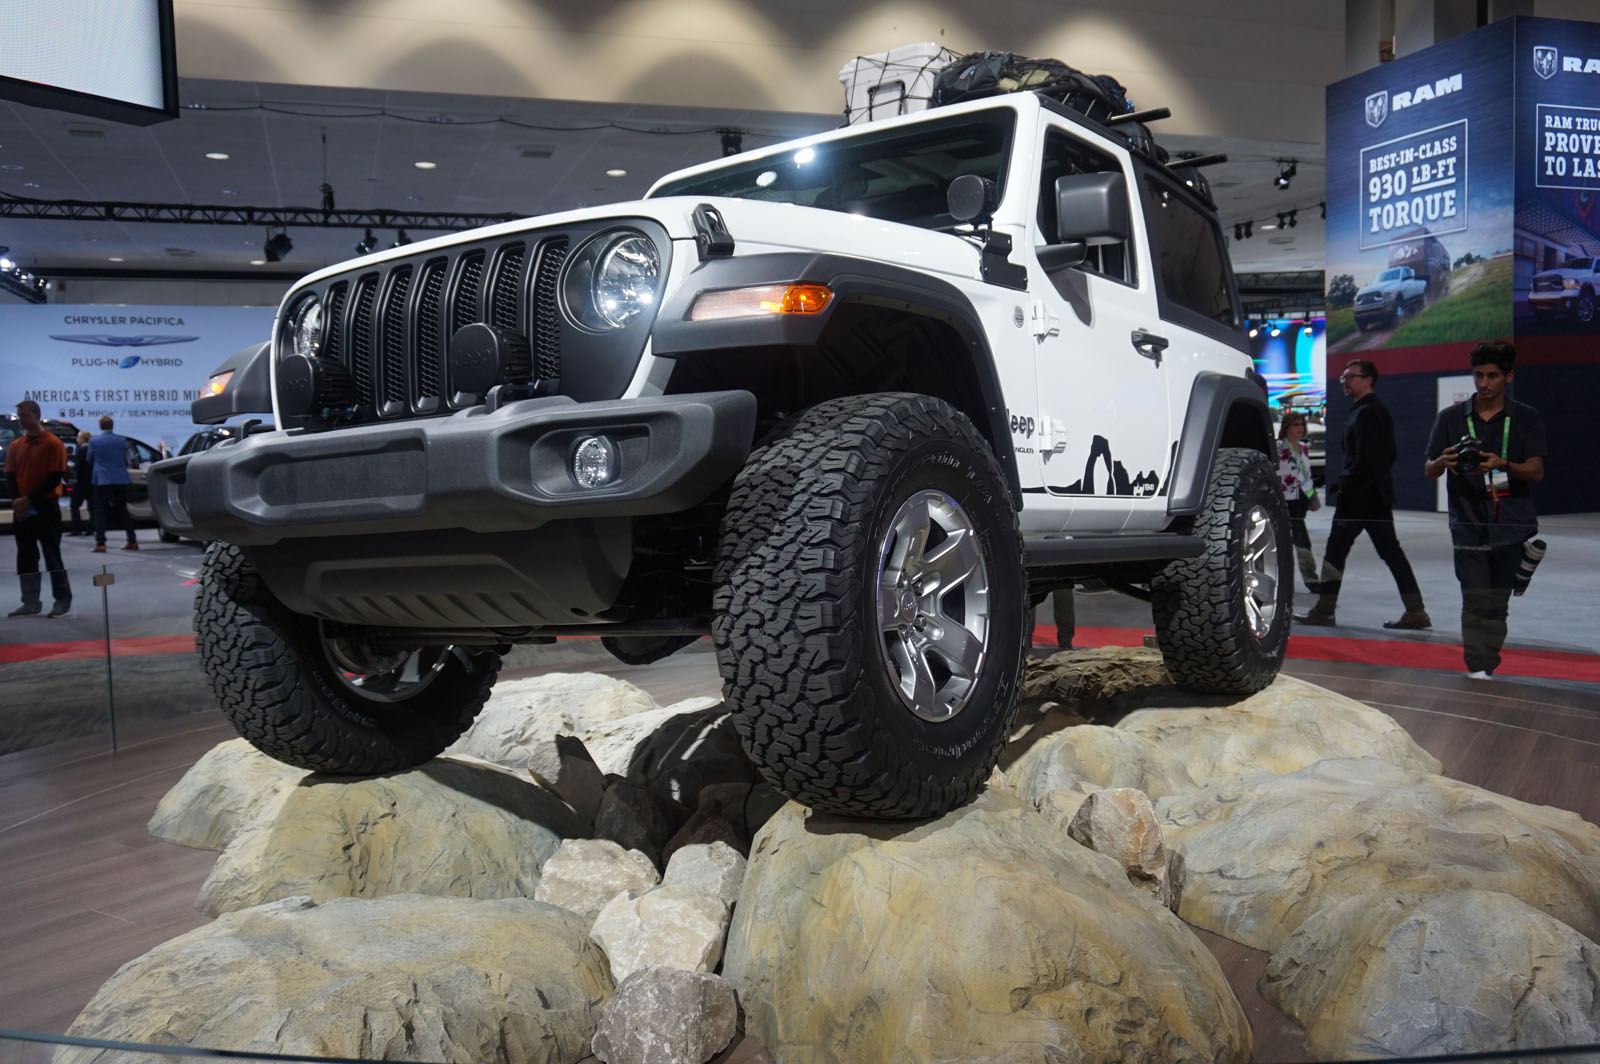 New 2018 Jeep Wrangler JL Debuts With 3 Engine Options, Upscale